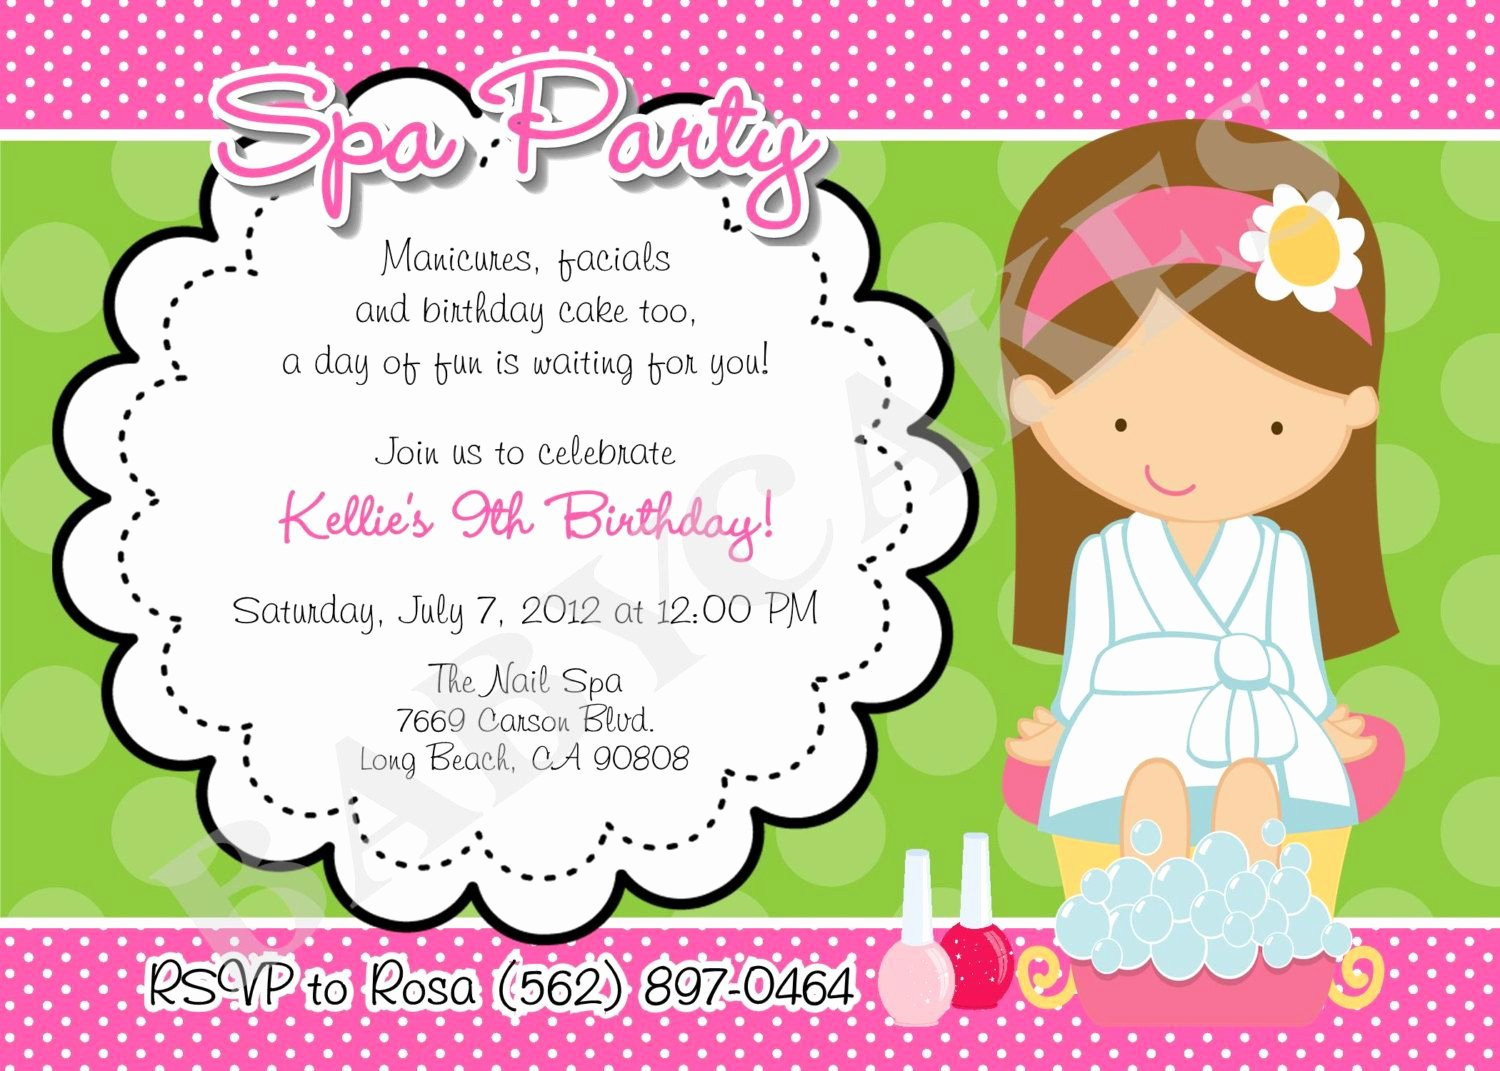 Spa Party Invitation Wording Best Of Birthday Invitations Exciting Spa Party Invitation Design